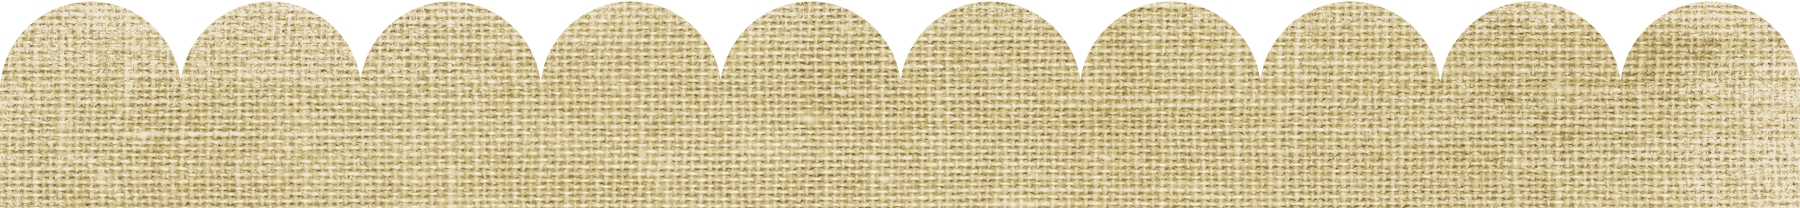 Scalloped Border Templates In Any Color Free Download